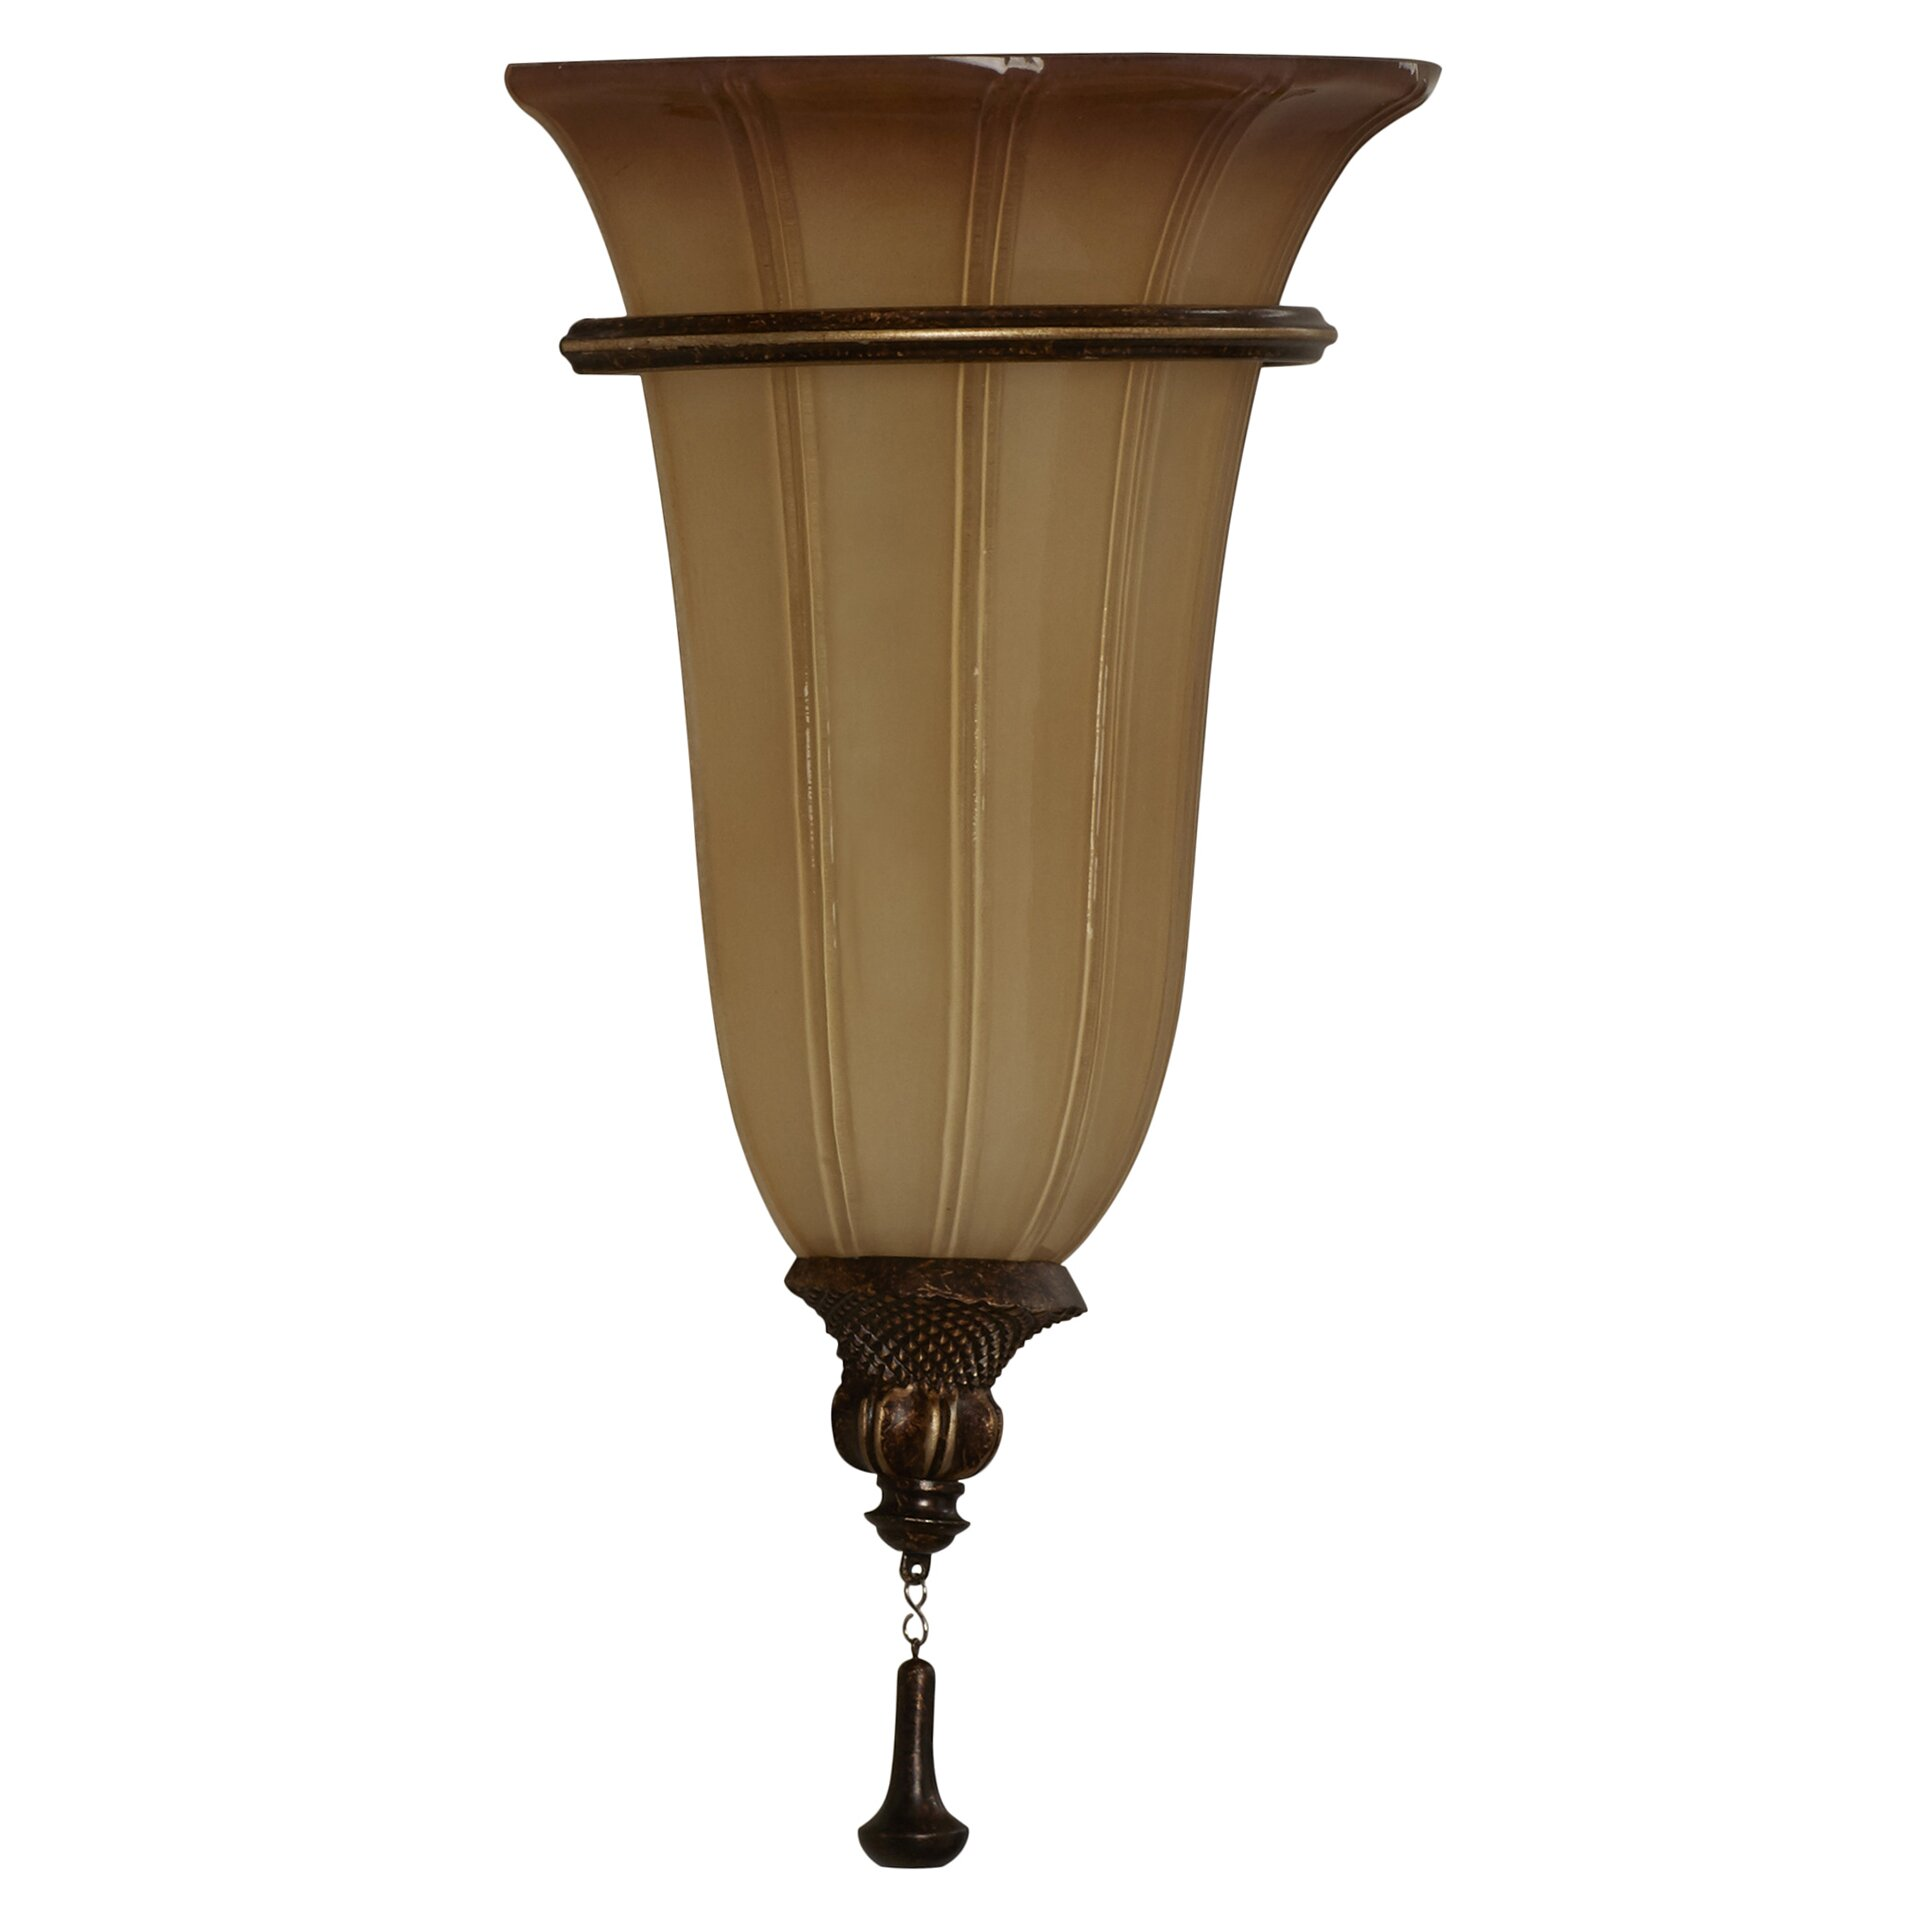 Alcott Hill Norwood 1 Light Wall Sconce & Reviews